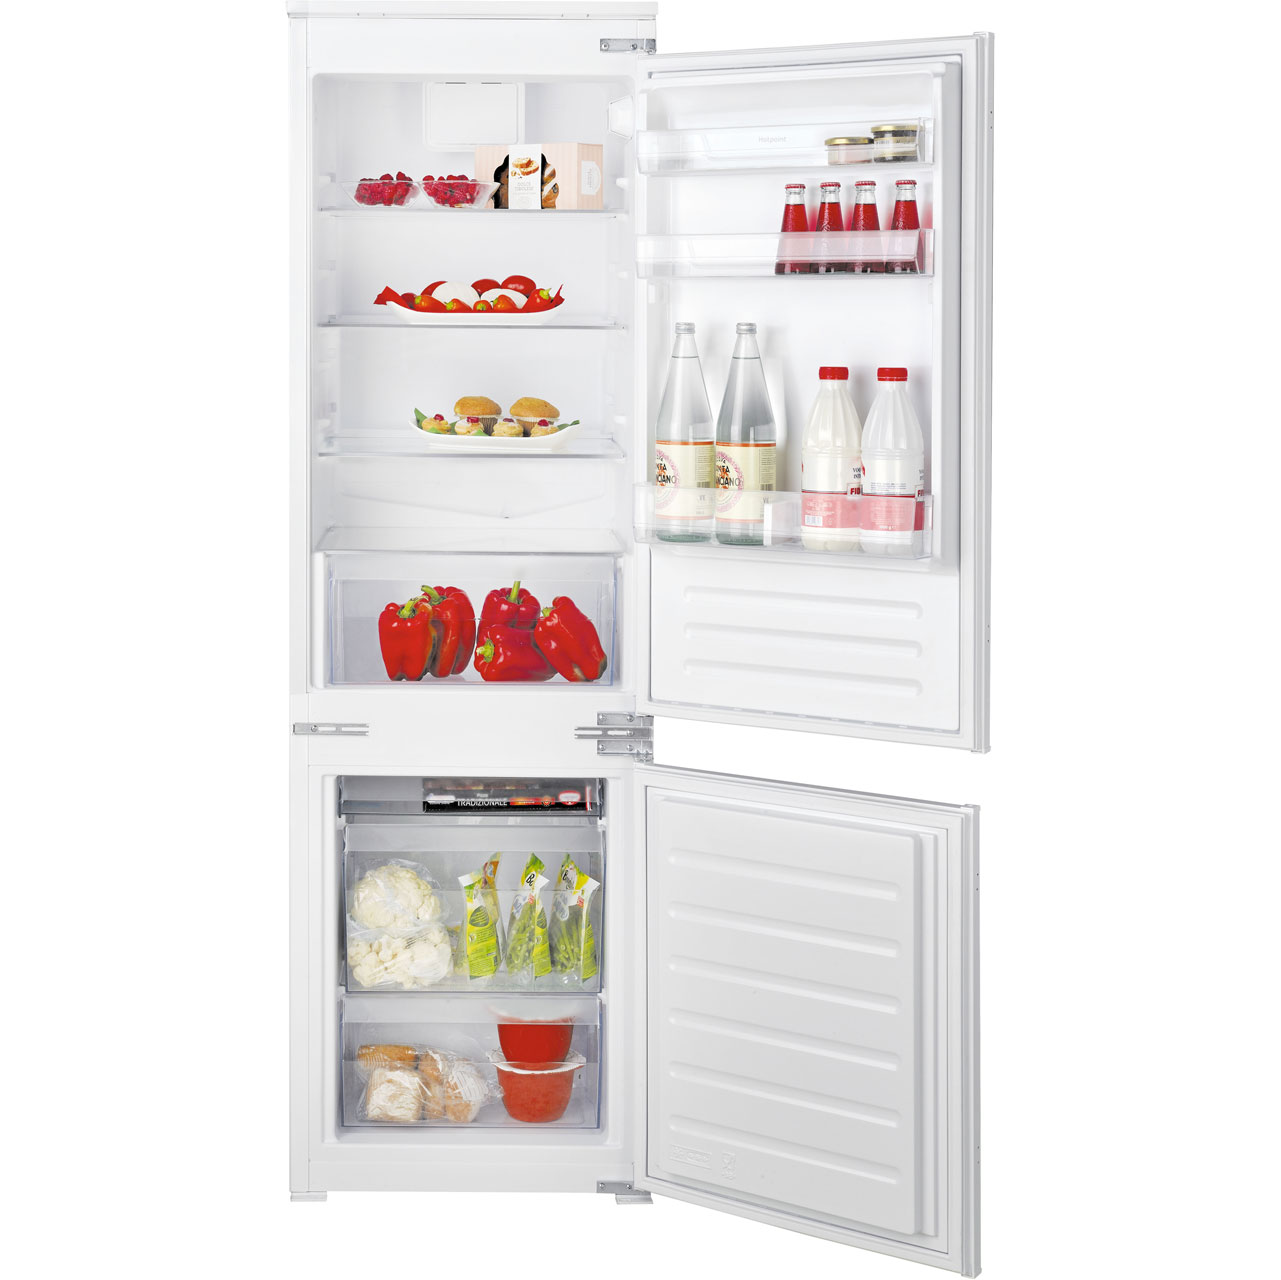 Hotpoint HMCB7030AADF Integrated Fridge Freezer Frost Free in White